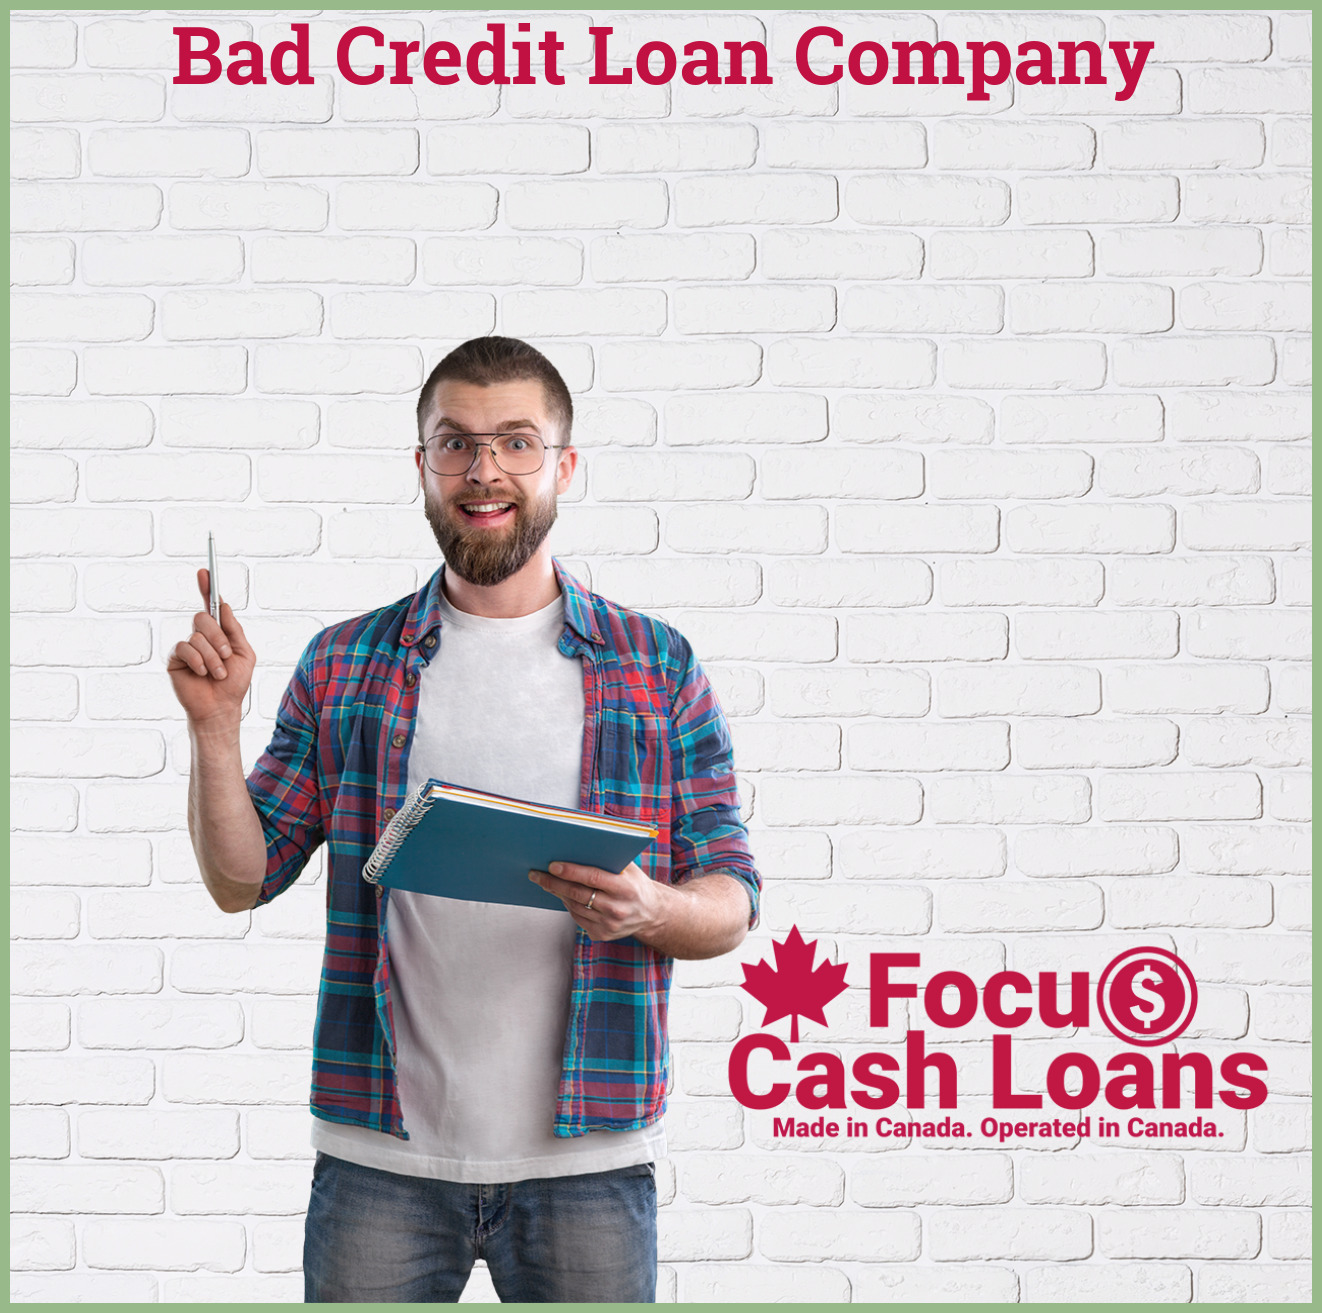 Payday loans Alberta makes you Stand on Higher grounds